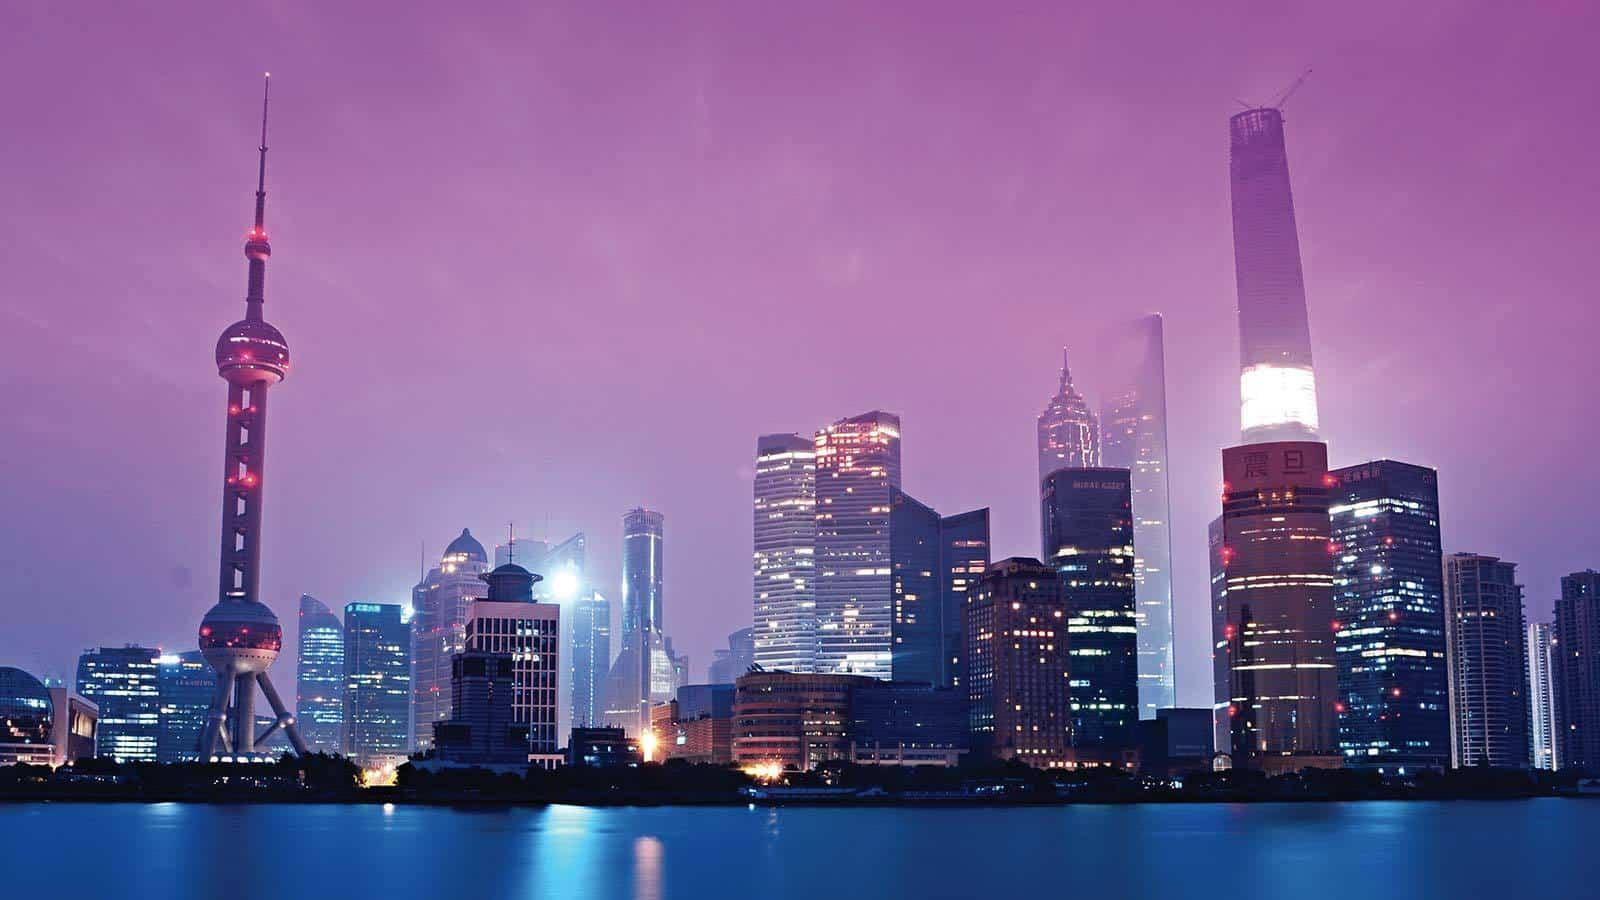 Shanghai as a representative of the second largest economy in the world